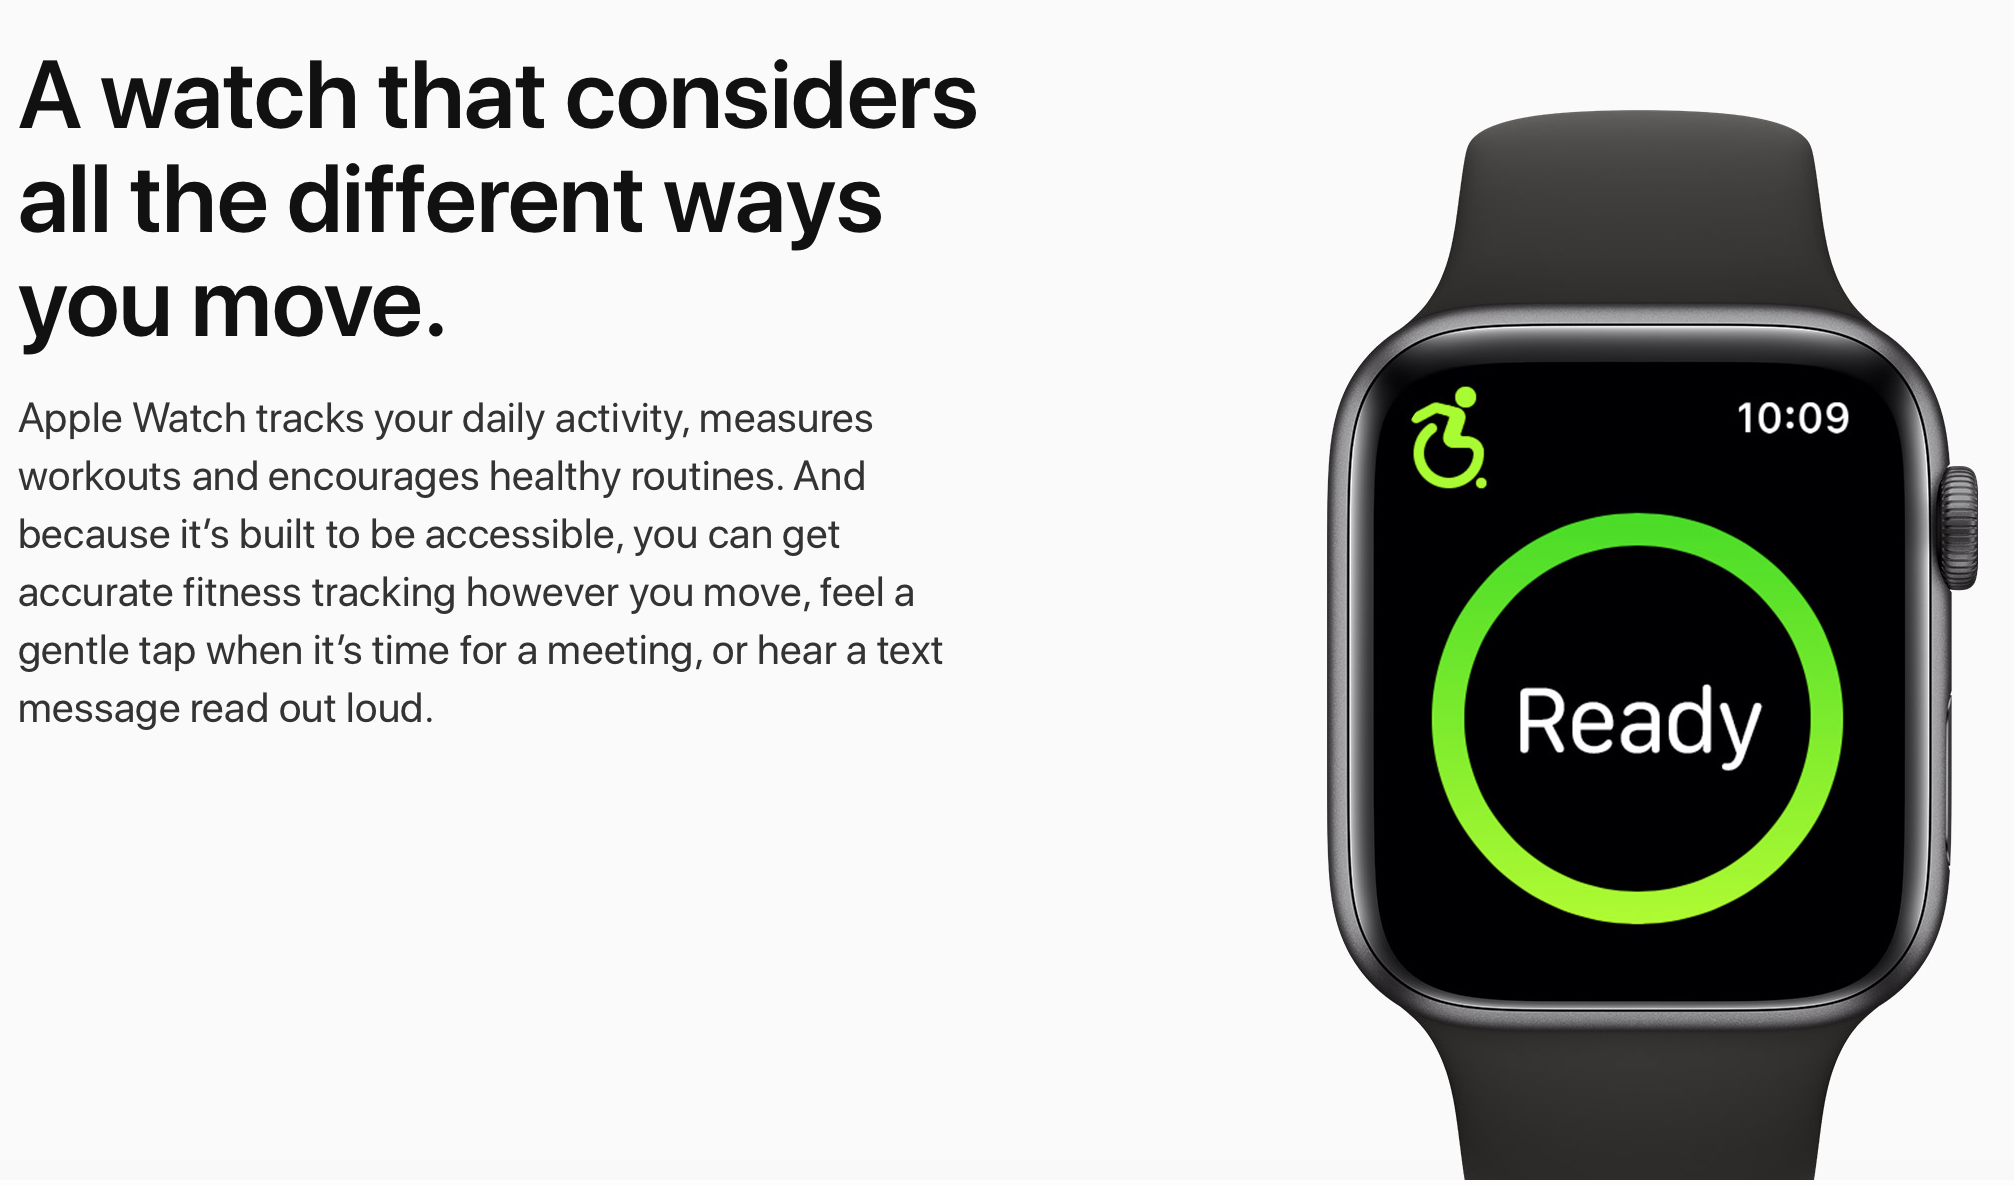 an Apple advert for the smart watch states 'a watch that considers the different ways you move' with a picture of the app on the watch